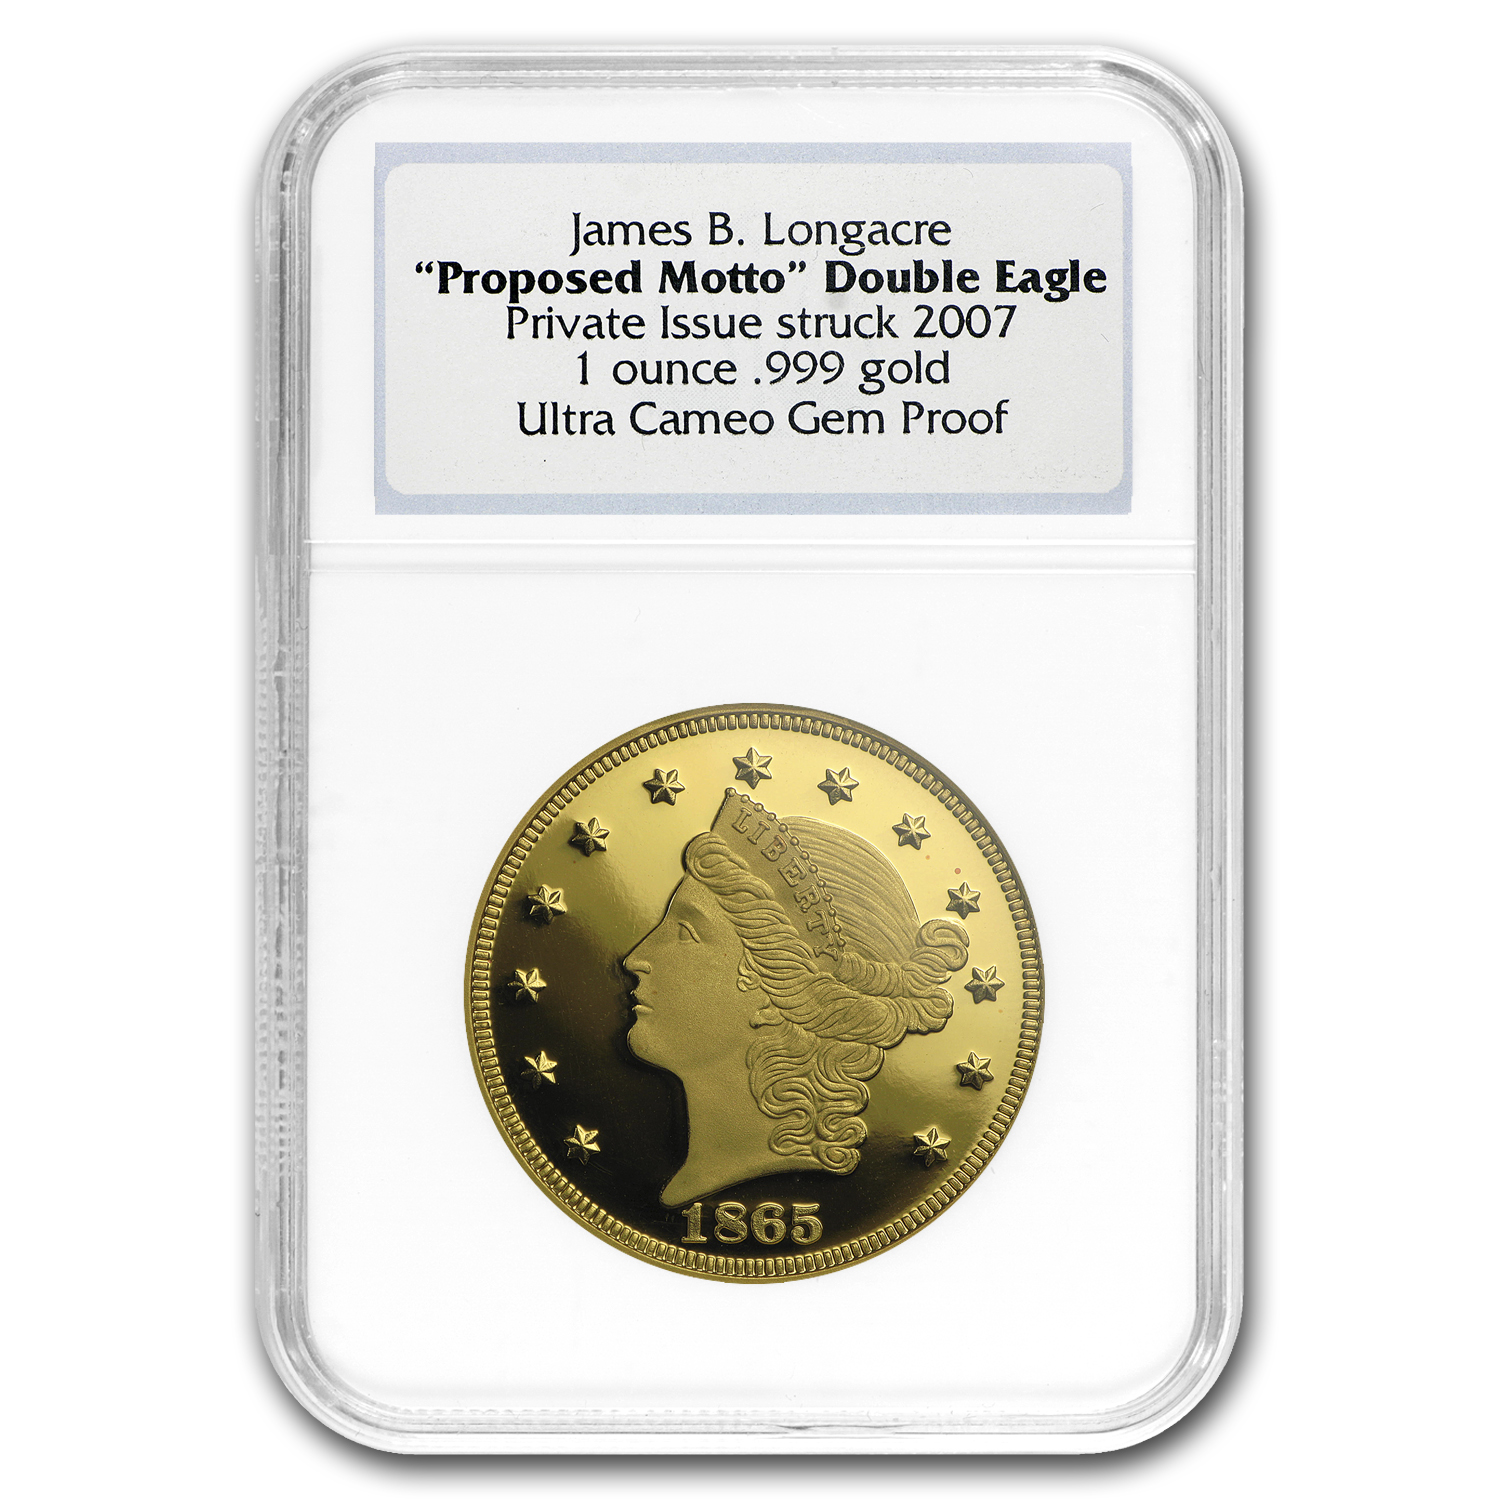 1 oz 1865 Proposed Motto Double Eagle Proof NGC (w/Box & COA)